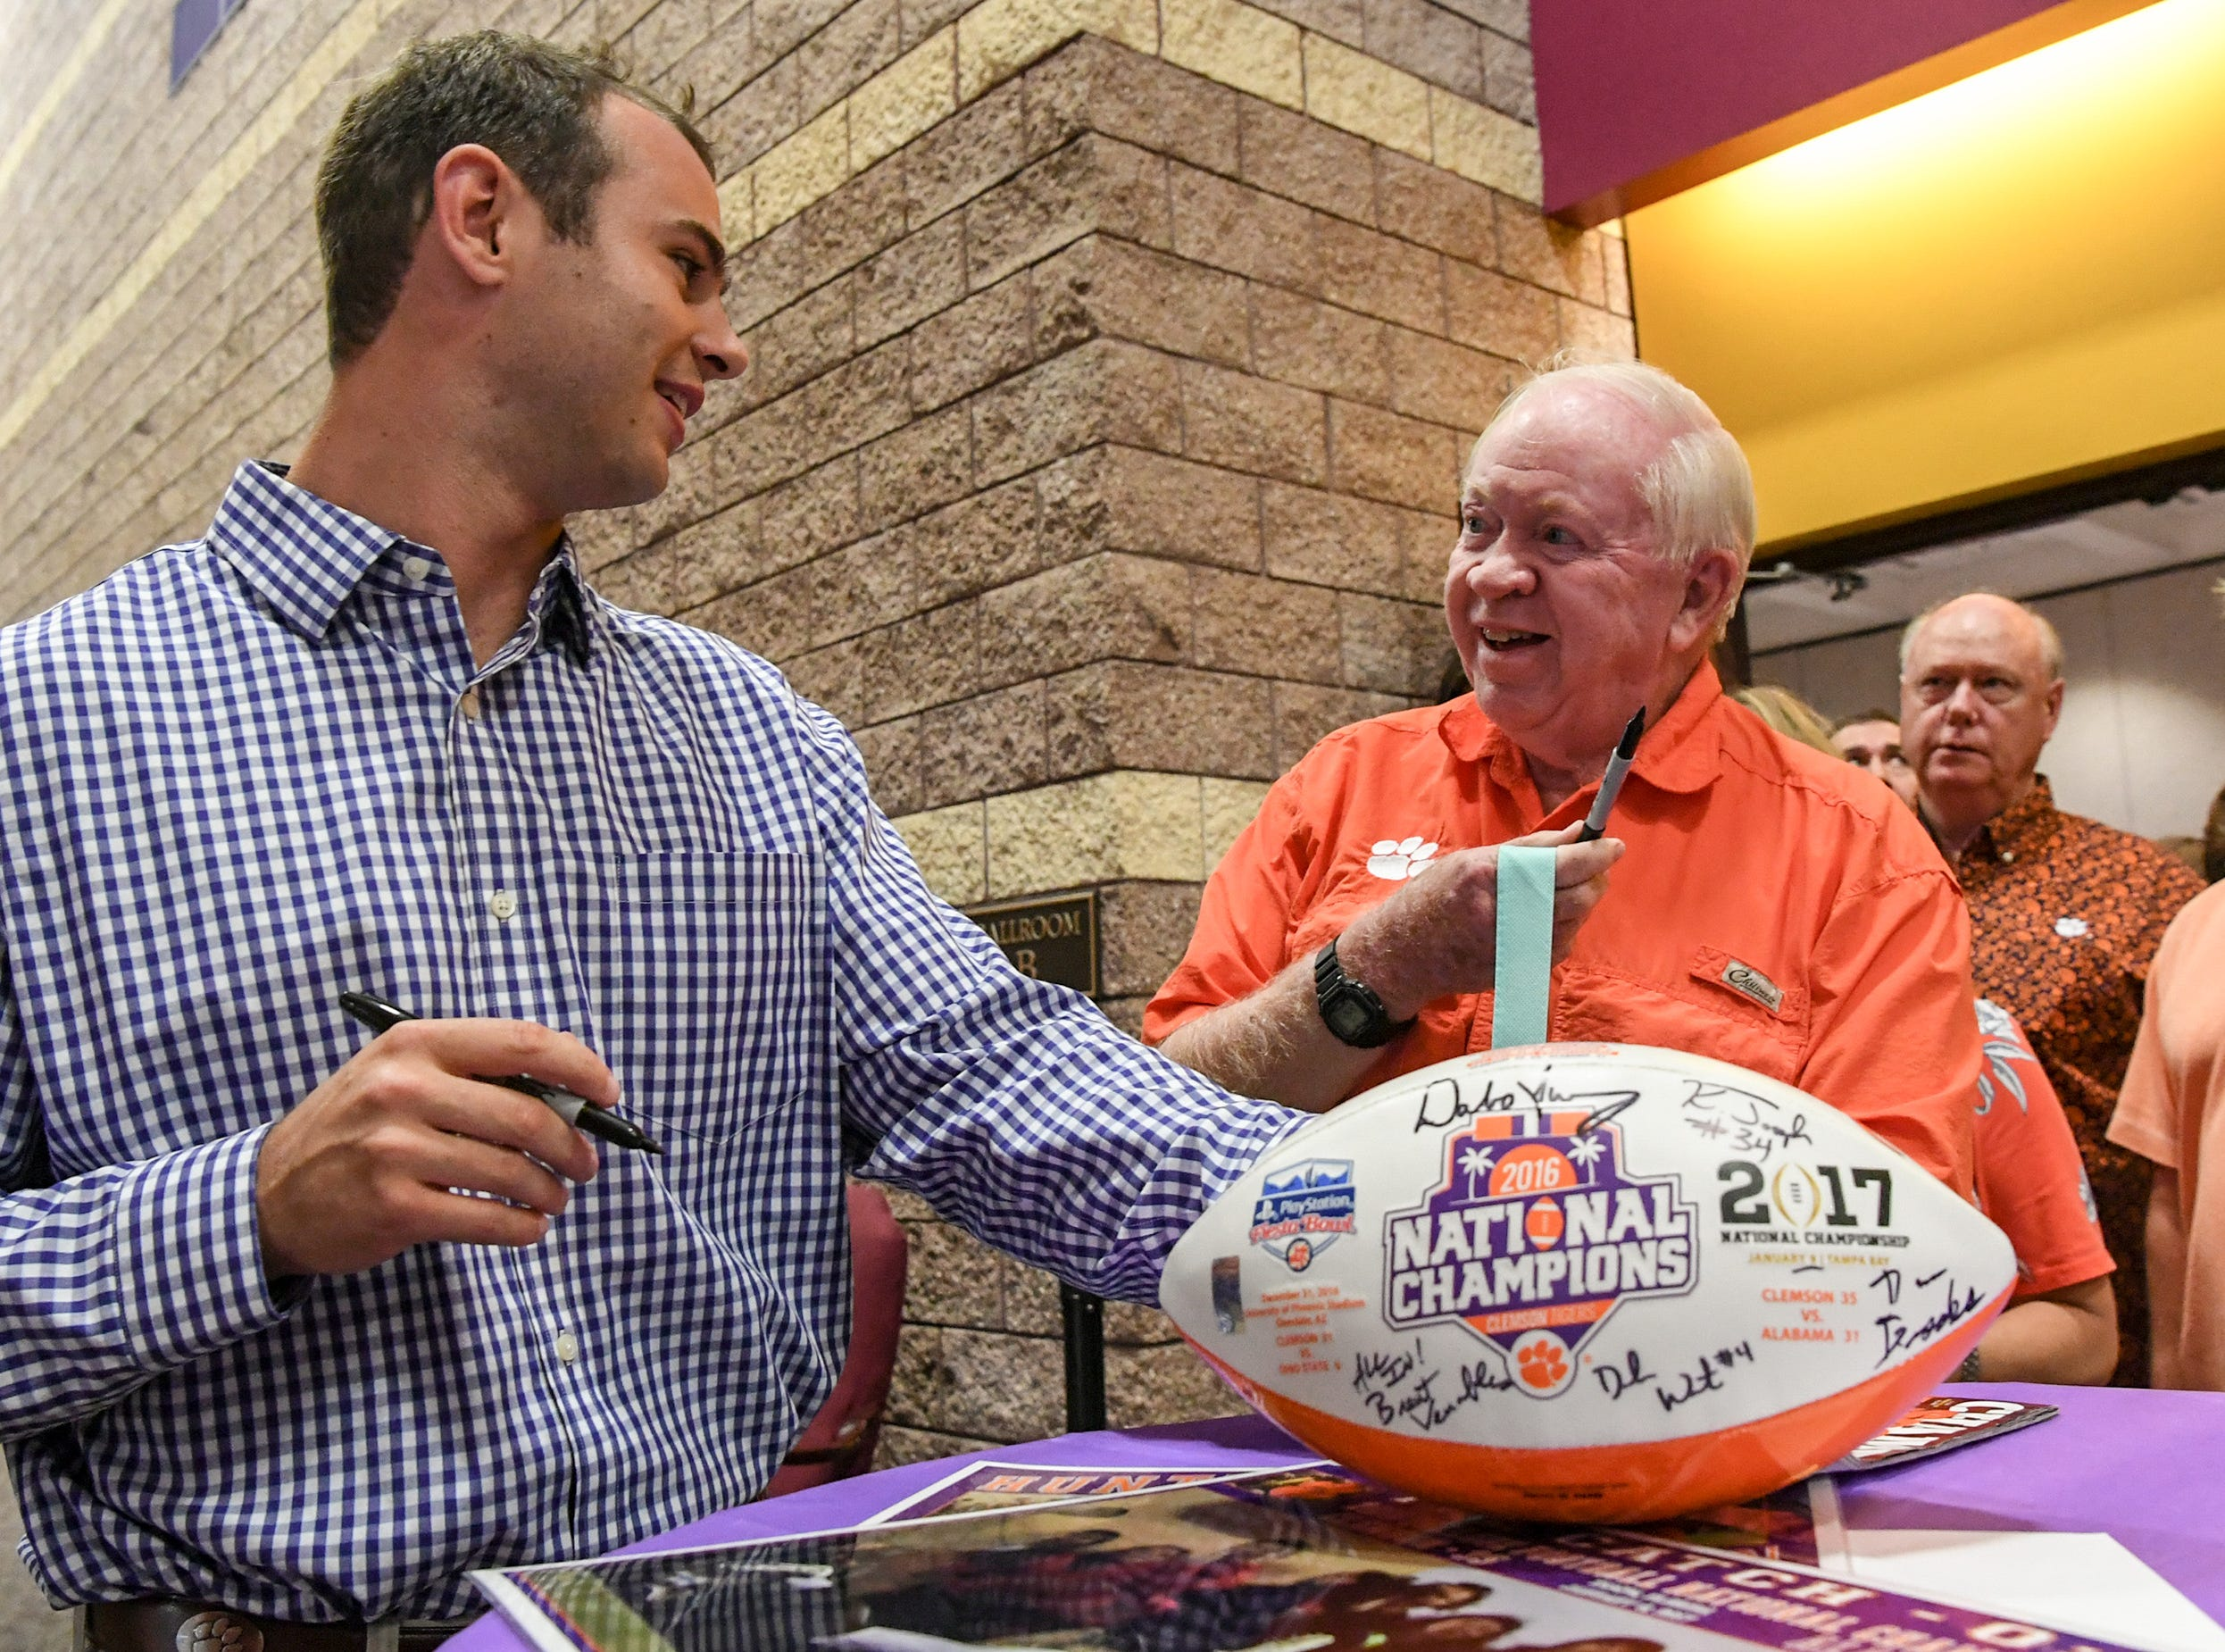 Hunter Renfrow, left, former Clemson football star receiver and two-time national champion, signs an autograph for Ed Ables of Pendleton, before the Anderson Area Touchdown Club Annual Awards Banquet at the Anderson County Civic Center Monday, April 8th, 2019. Awards were given to the high school players of the year, and coach of the year from the eight Anderson County high schools. The club honored former Belton-Honea Path player Kendall Joseph who was part of two National Championship Clemson football teams.